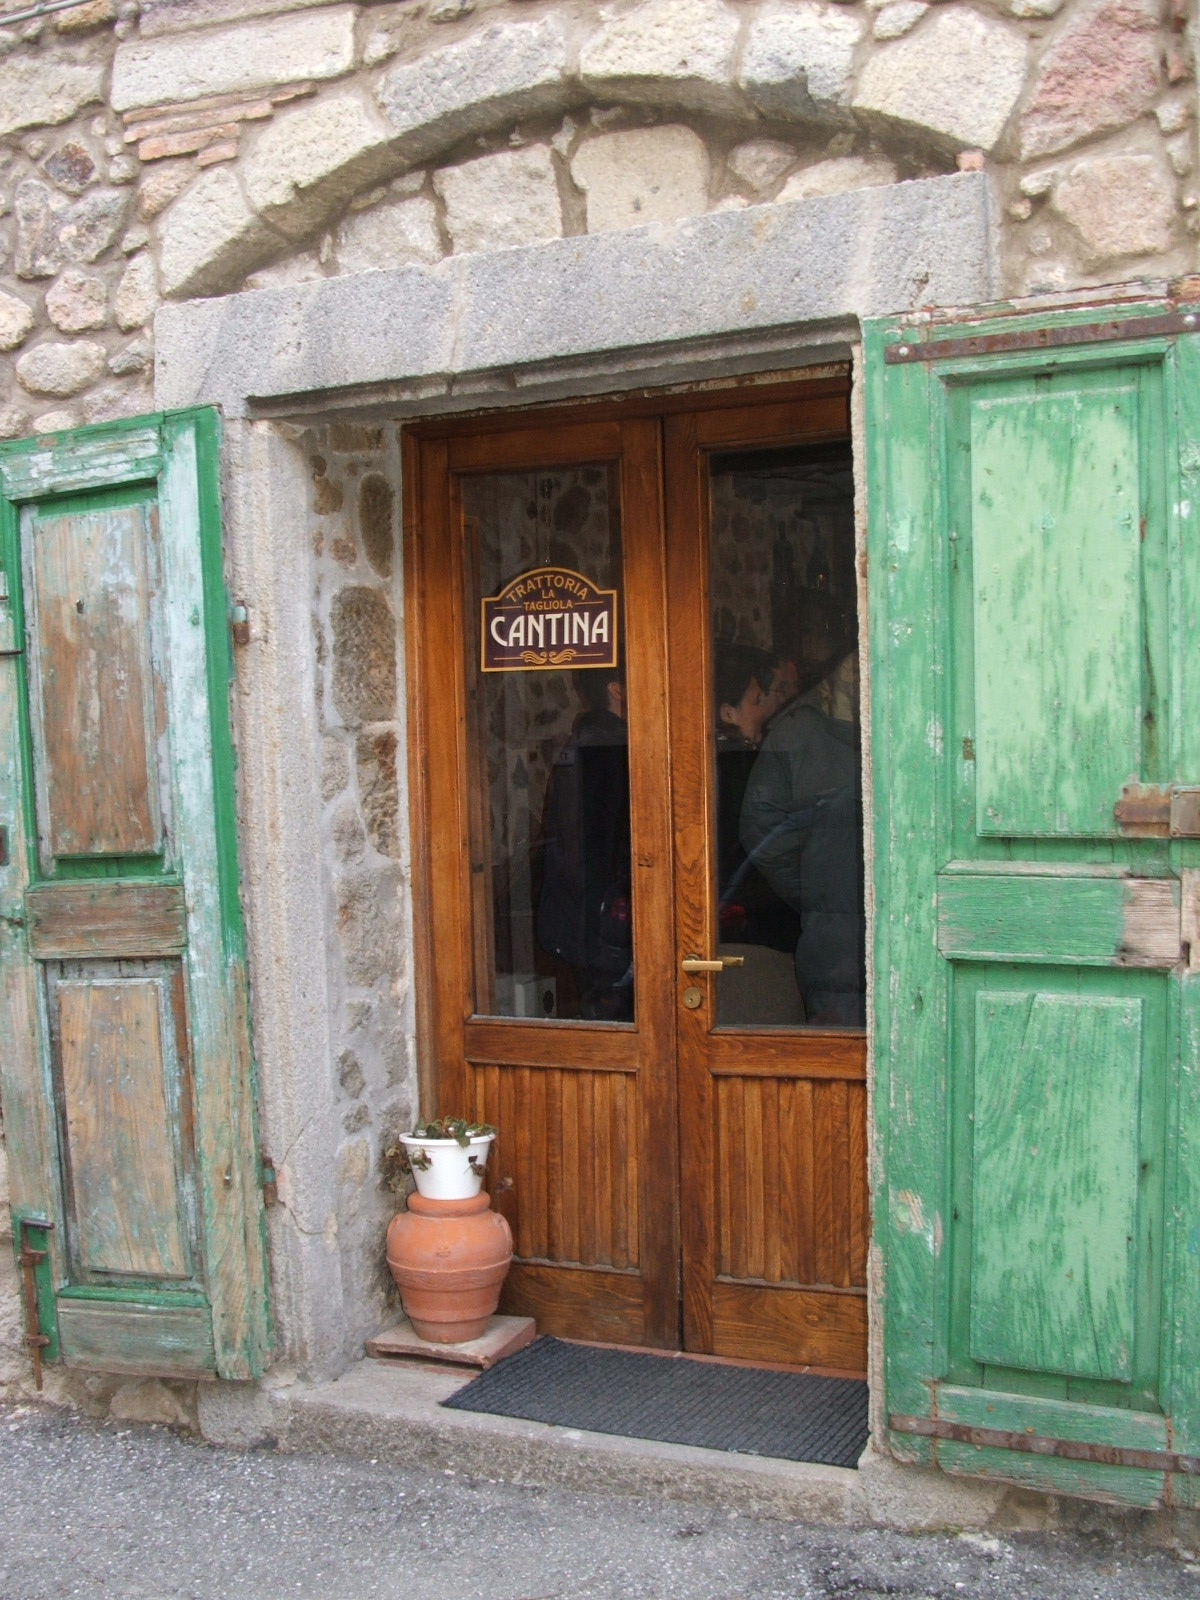 Cantina wikipedia for Food bar cantina zamet